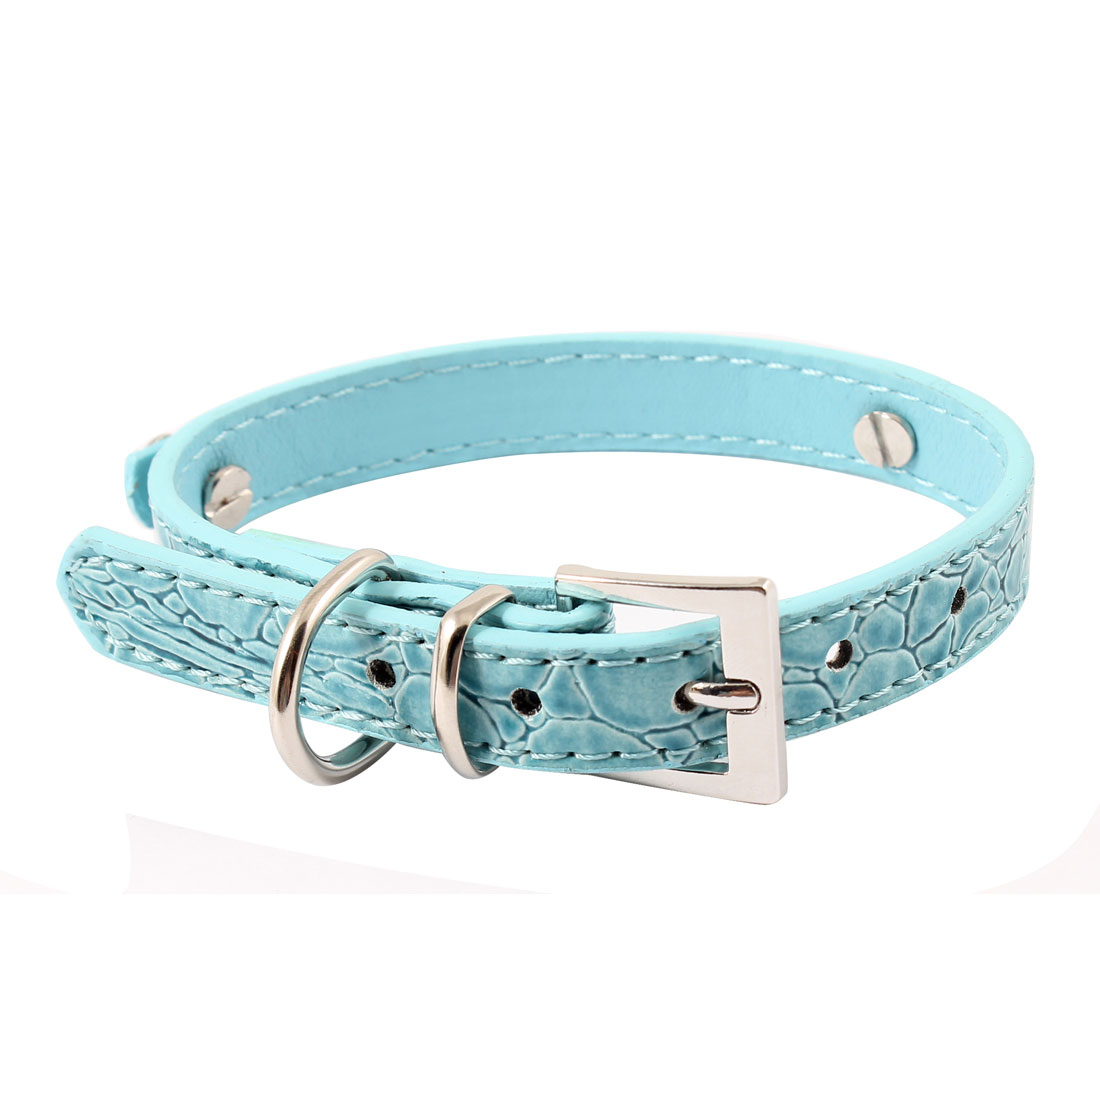 Alligator Printed Single Prong Buckle Adjustable Belt Blue Faux Leather Pet Chihuahua Tea Cup Poodle Tea Cup Yorkie Cat Dog Collar XS